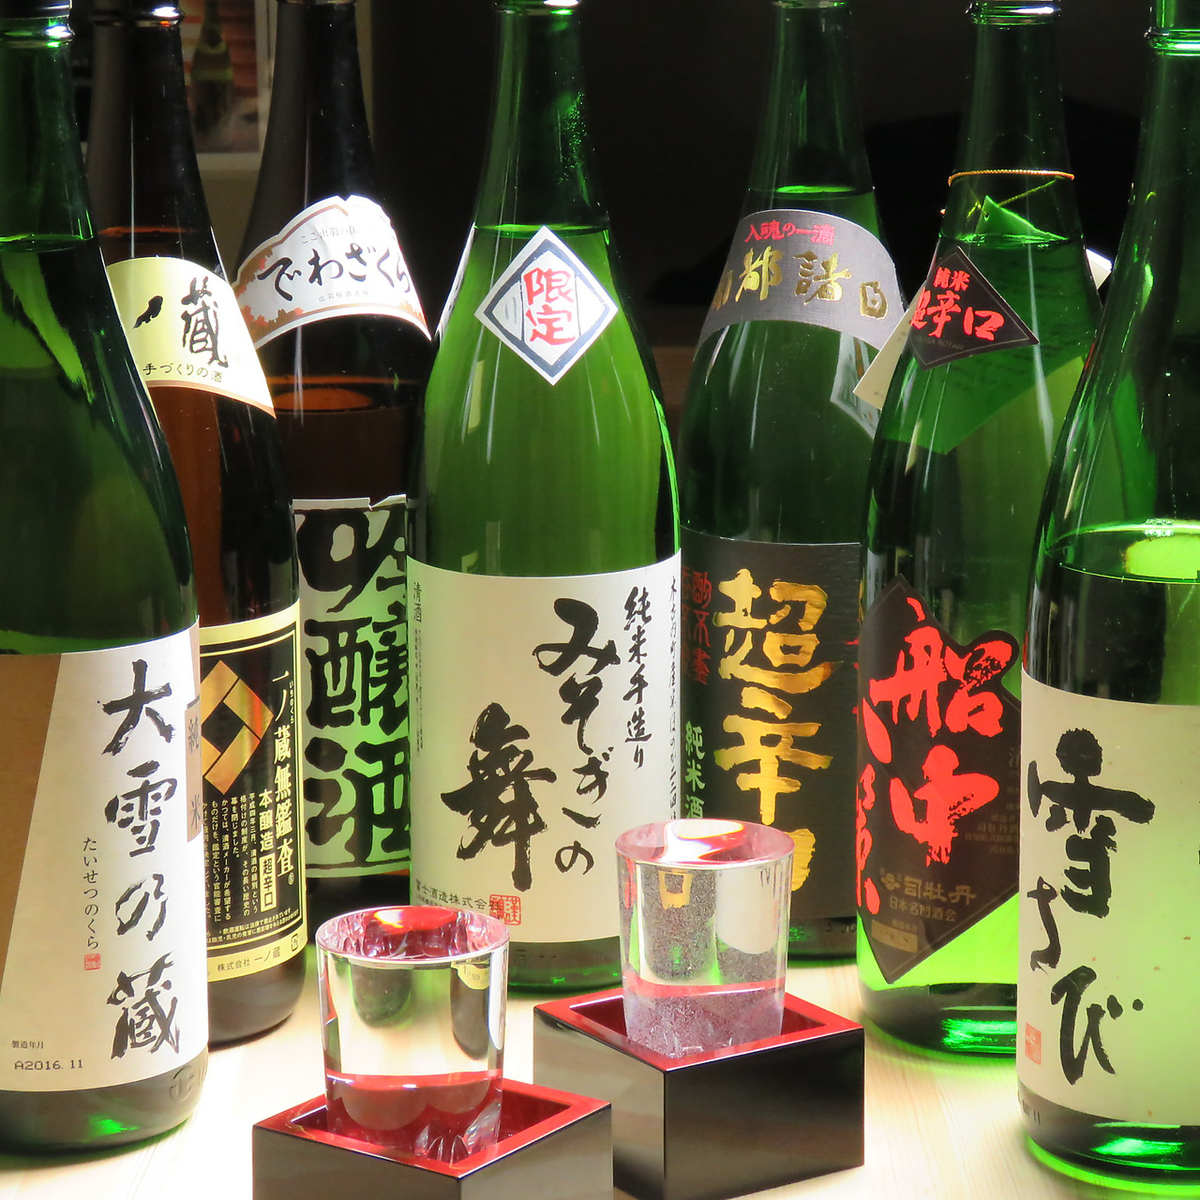 Prepared Japanese sake selected carefully for shopkeepers ♪ Shochu and Japanese sake are outstanding compatibility with relishes!